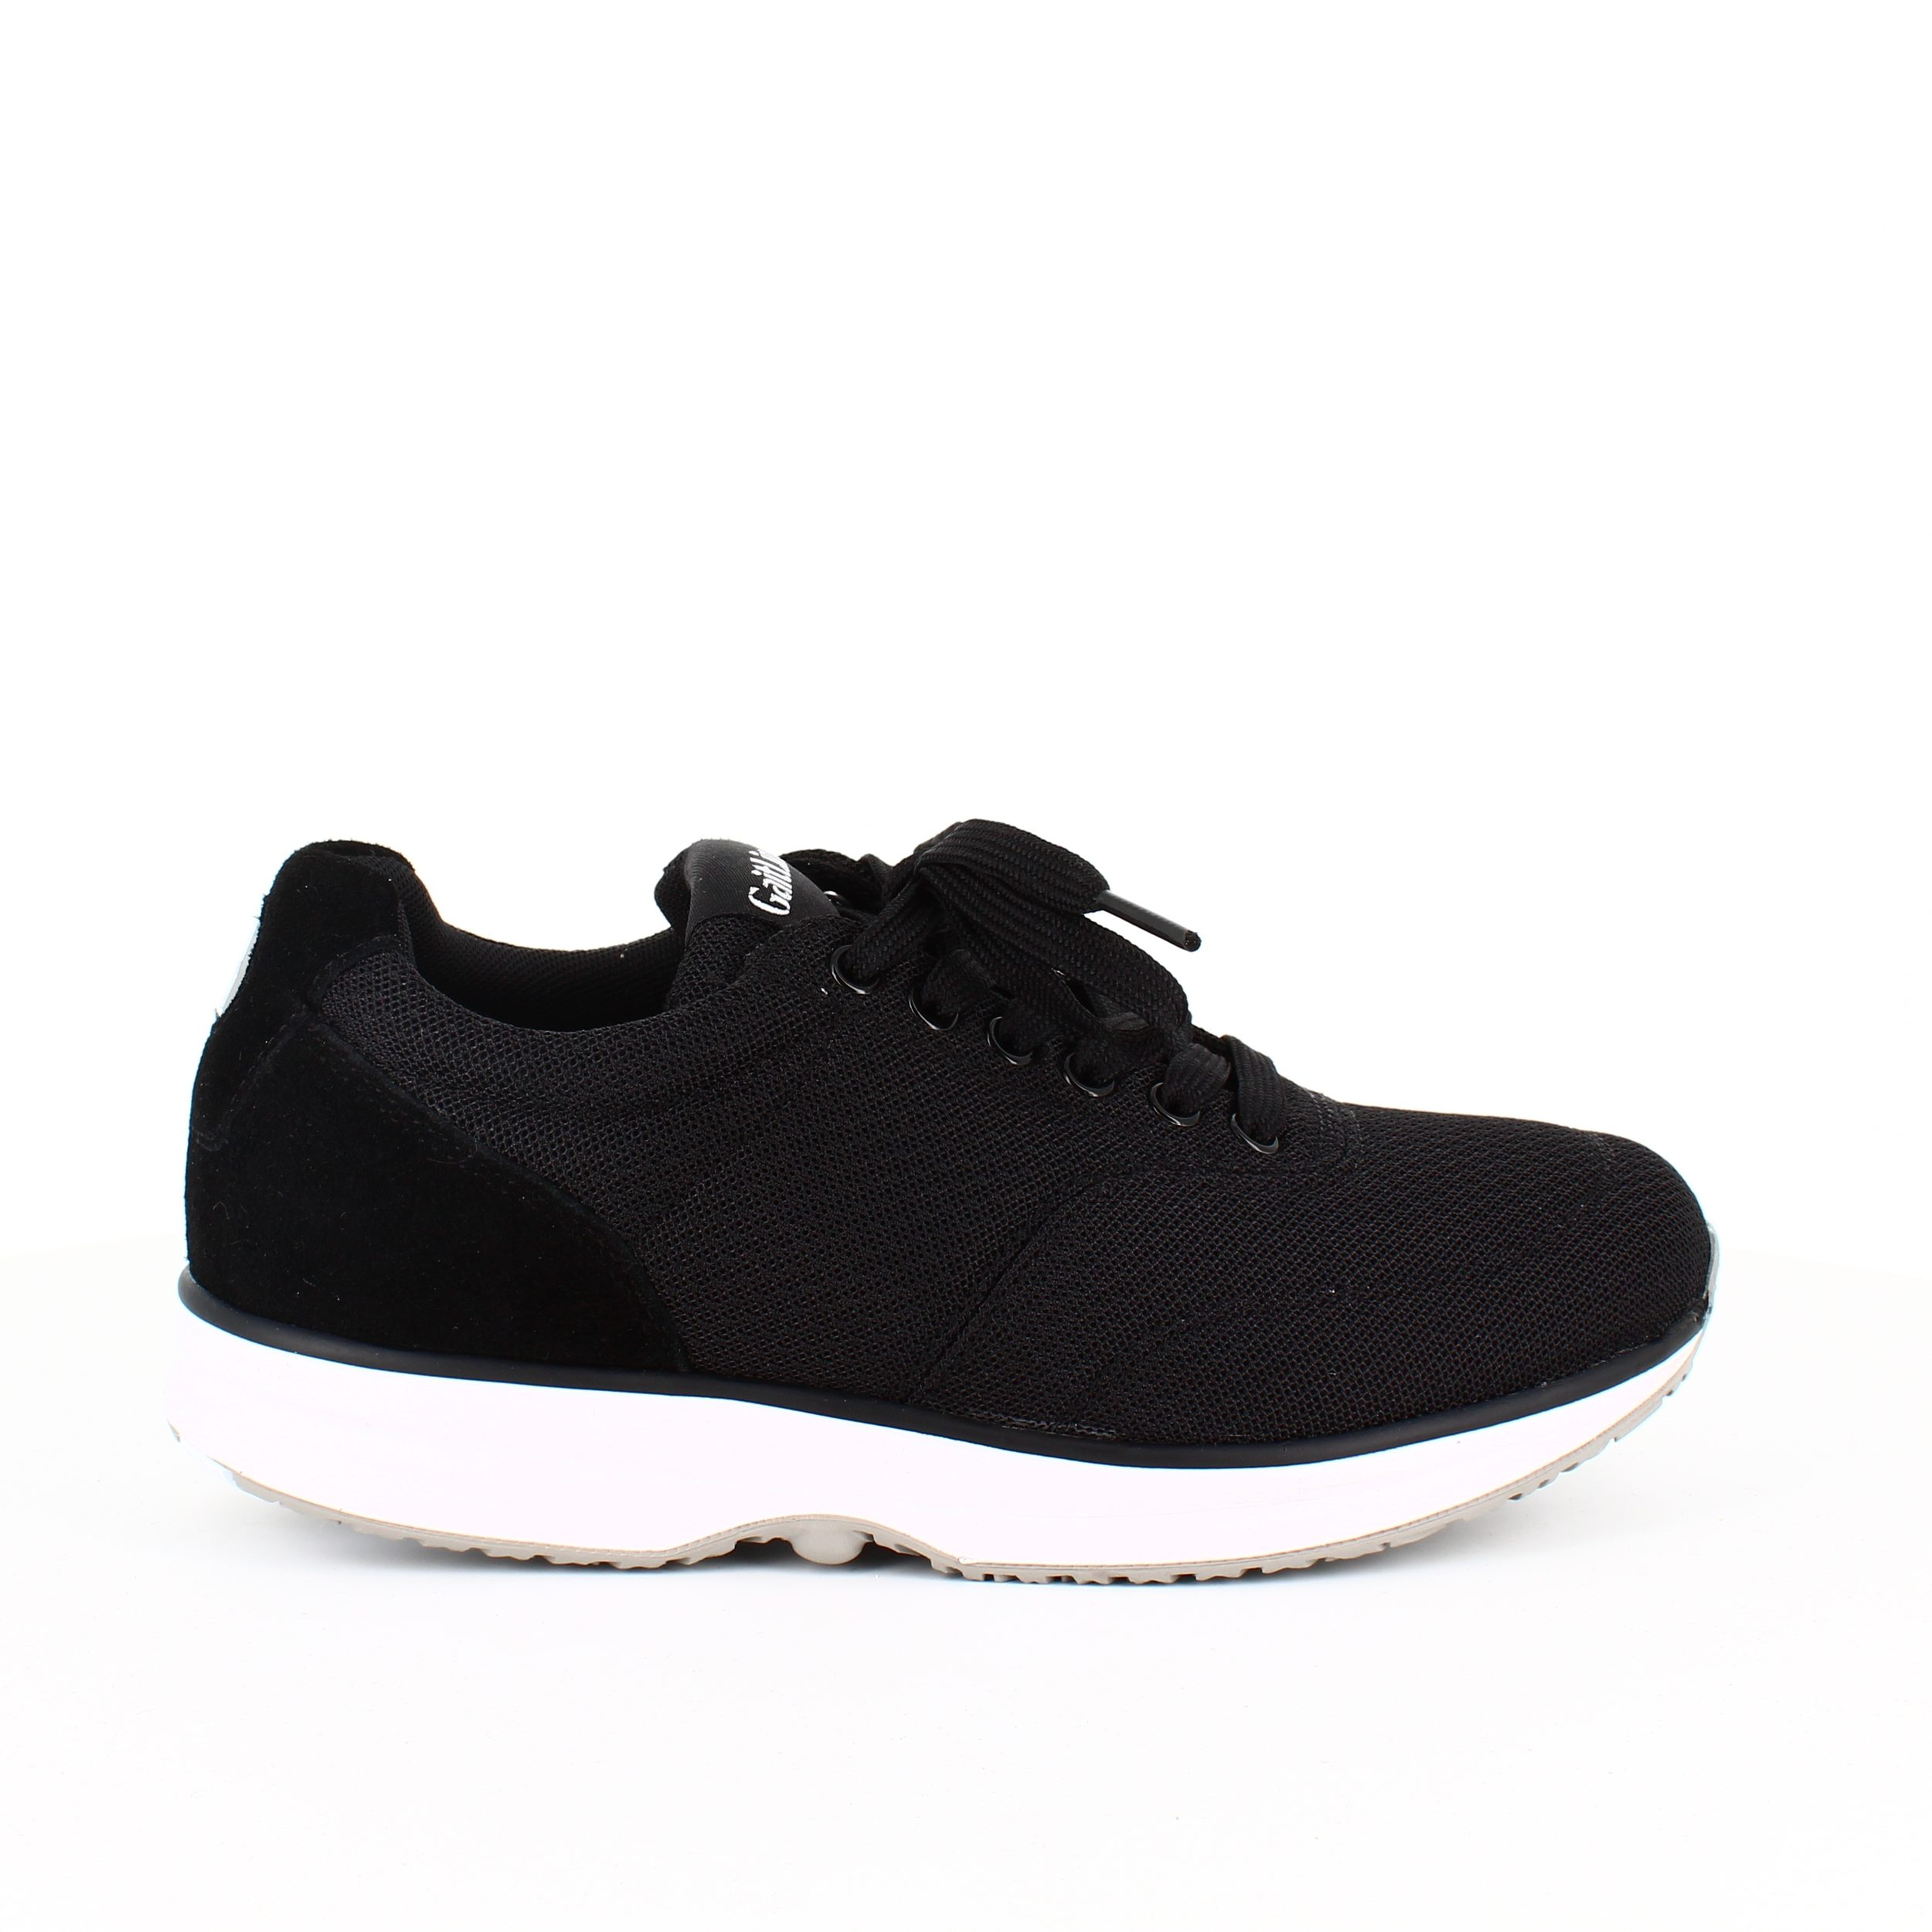 Image of   Flotte Sorte sneakers fra Gaitline - 40